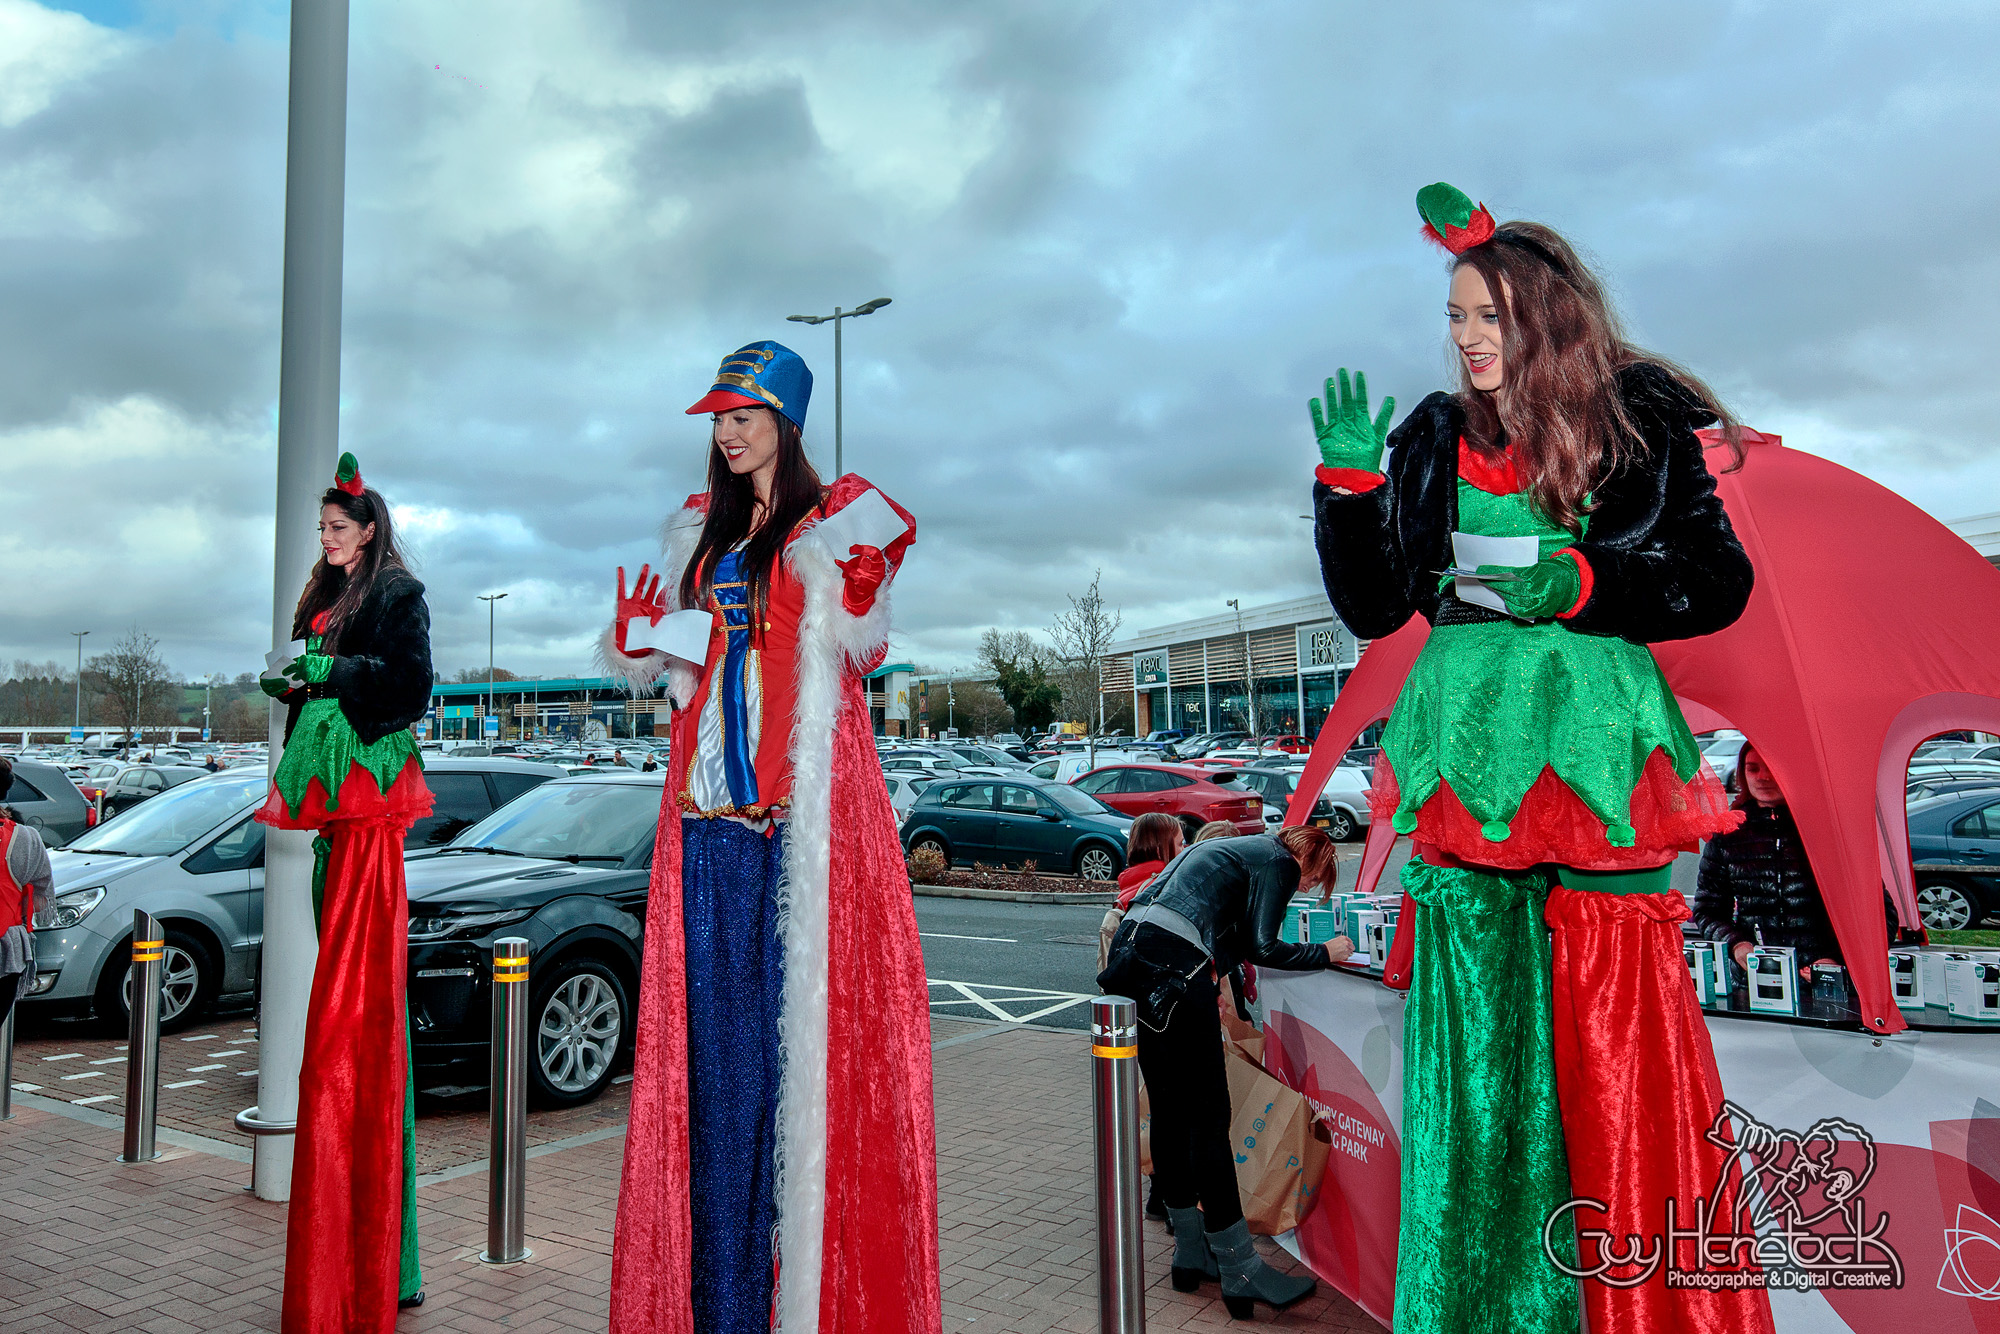 Girls on stilts - Banbury Gateway